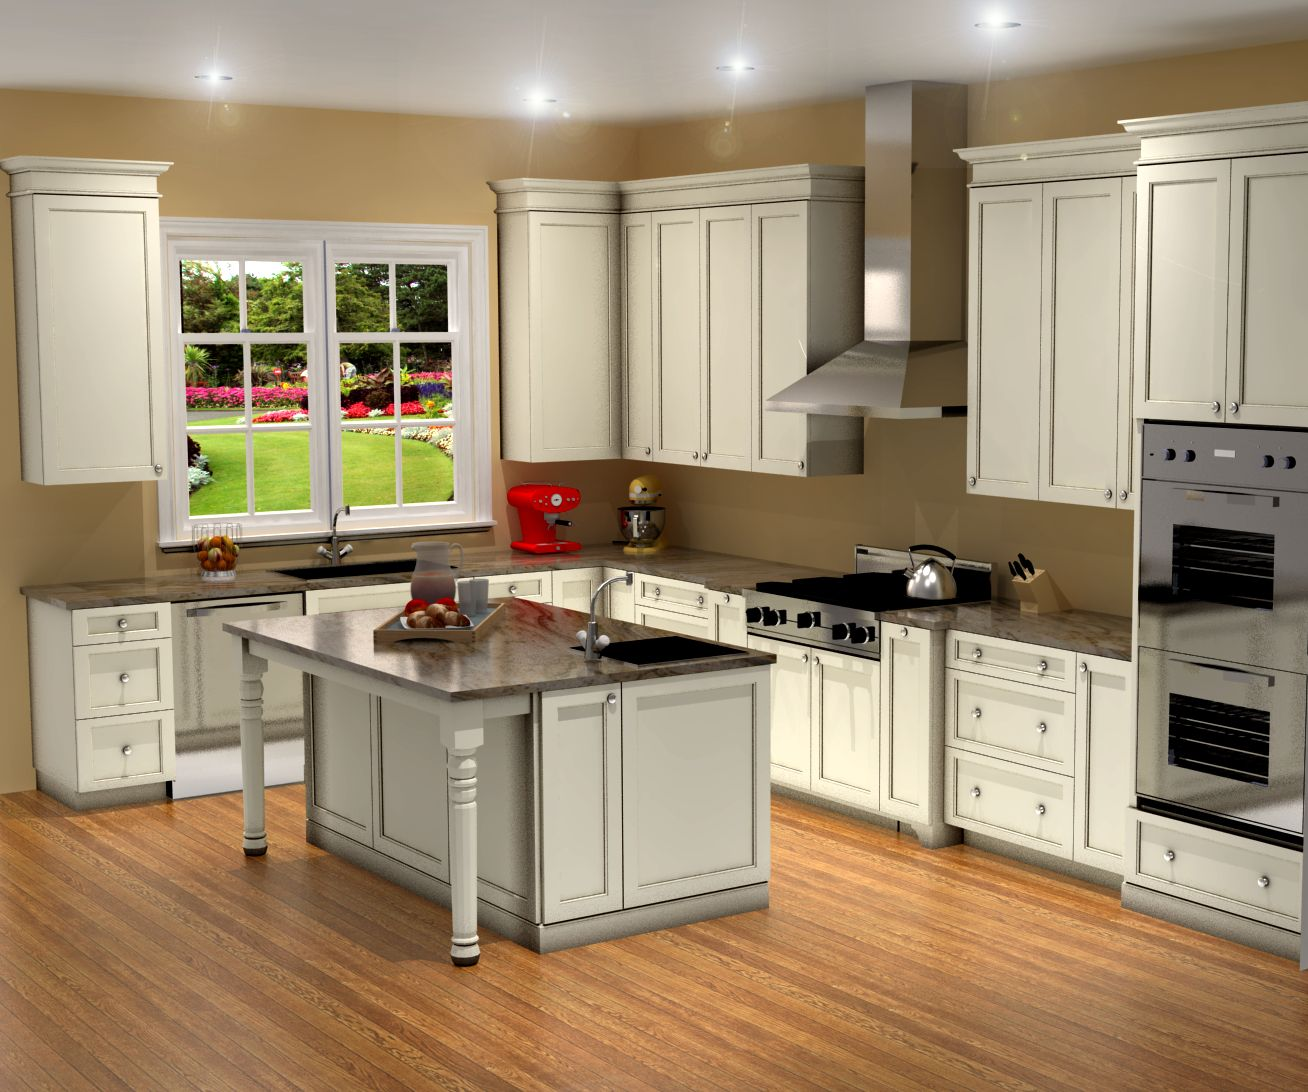 Images Of Kitchen Cabinets Design Traditional White Kitchen Design 3d Rendering Nick